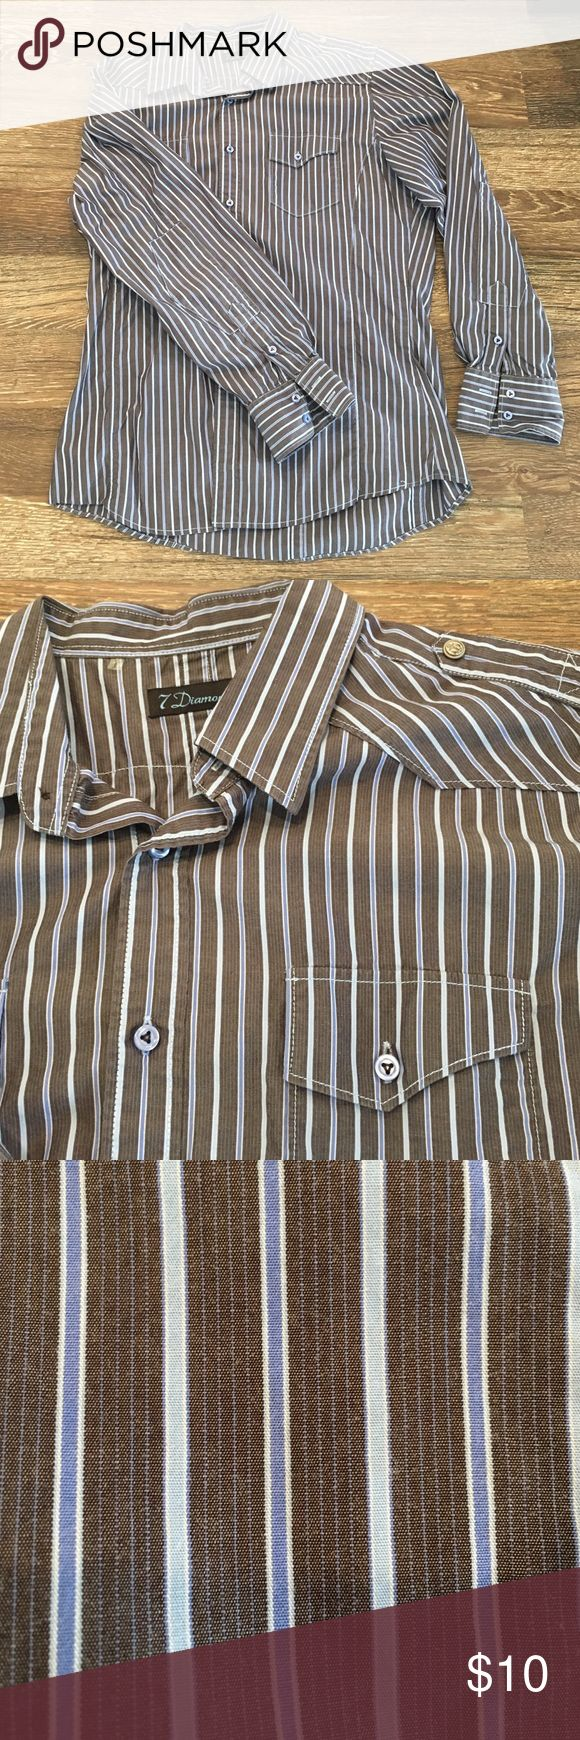 7 Diamonds Mens Stripe Button Up Shirt 7 Diamonds Mens Stripe Button Up Shirt - Athletic Fit - Military Shoulder - Like new condition - Only worn 2 times. 7 Diamonds Shirts Casual Button Down Shirts